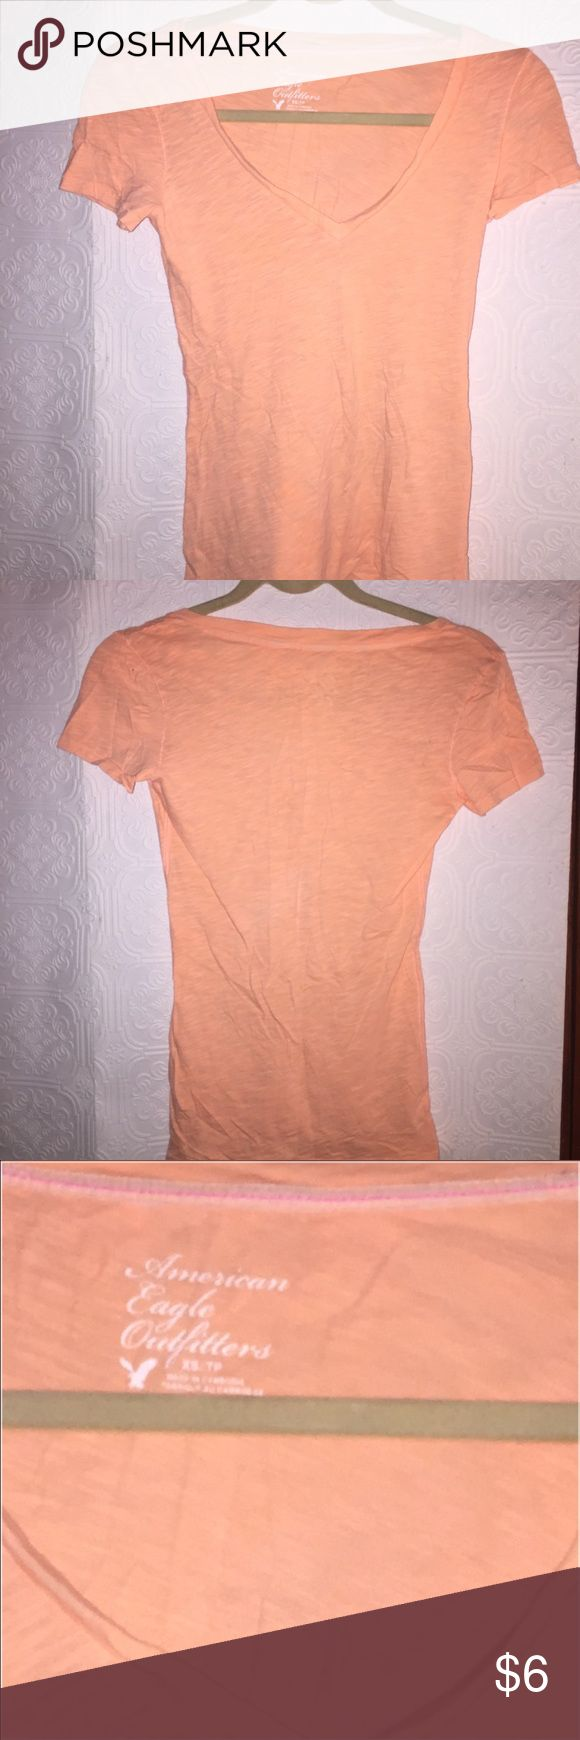 American Eagle Outfitters tee Light orange tee. Very light material. Comfortable ‼️ American Eagle Outfitters Tops Tees - Short Sleeve